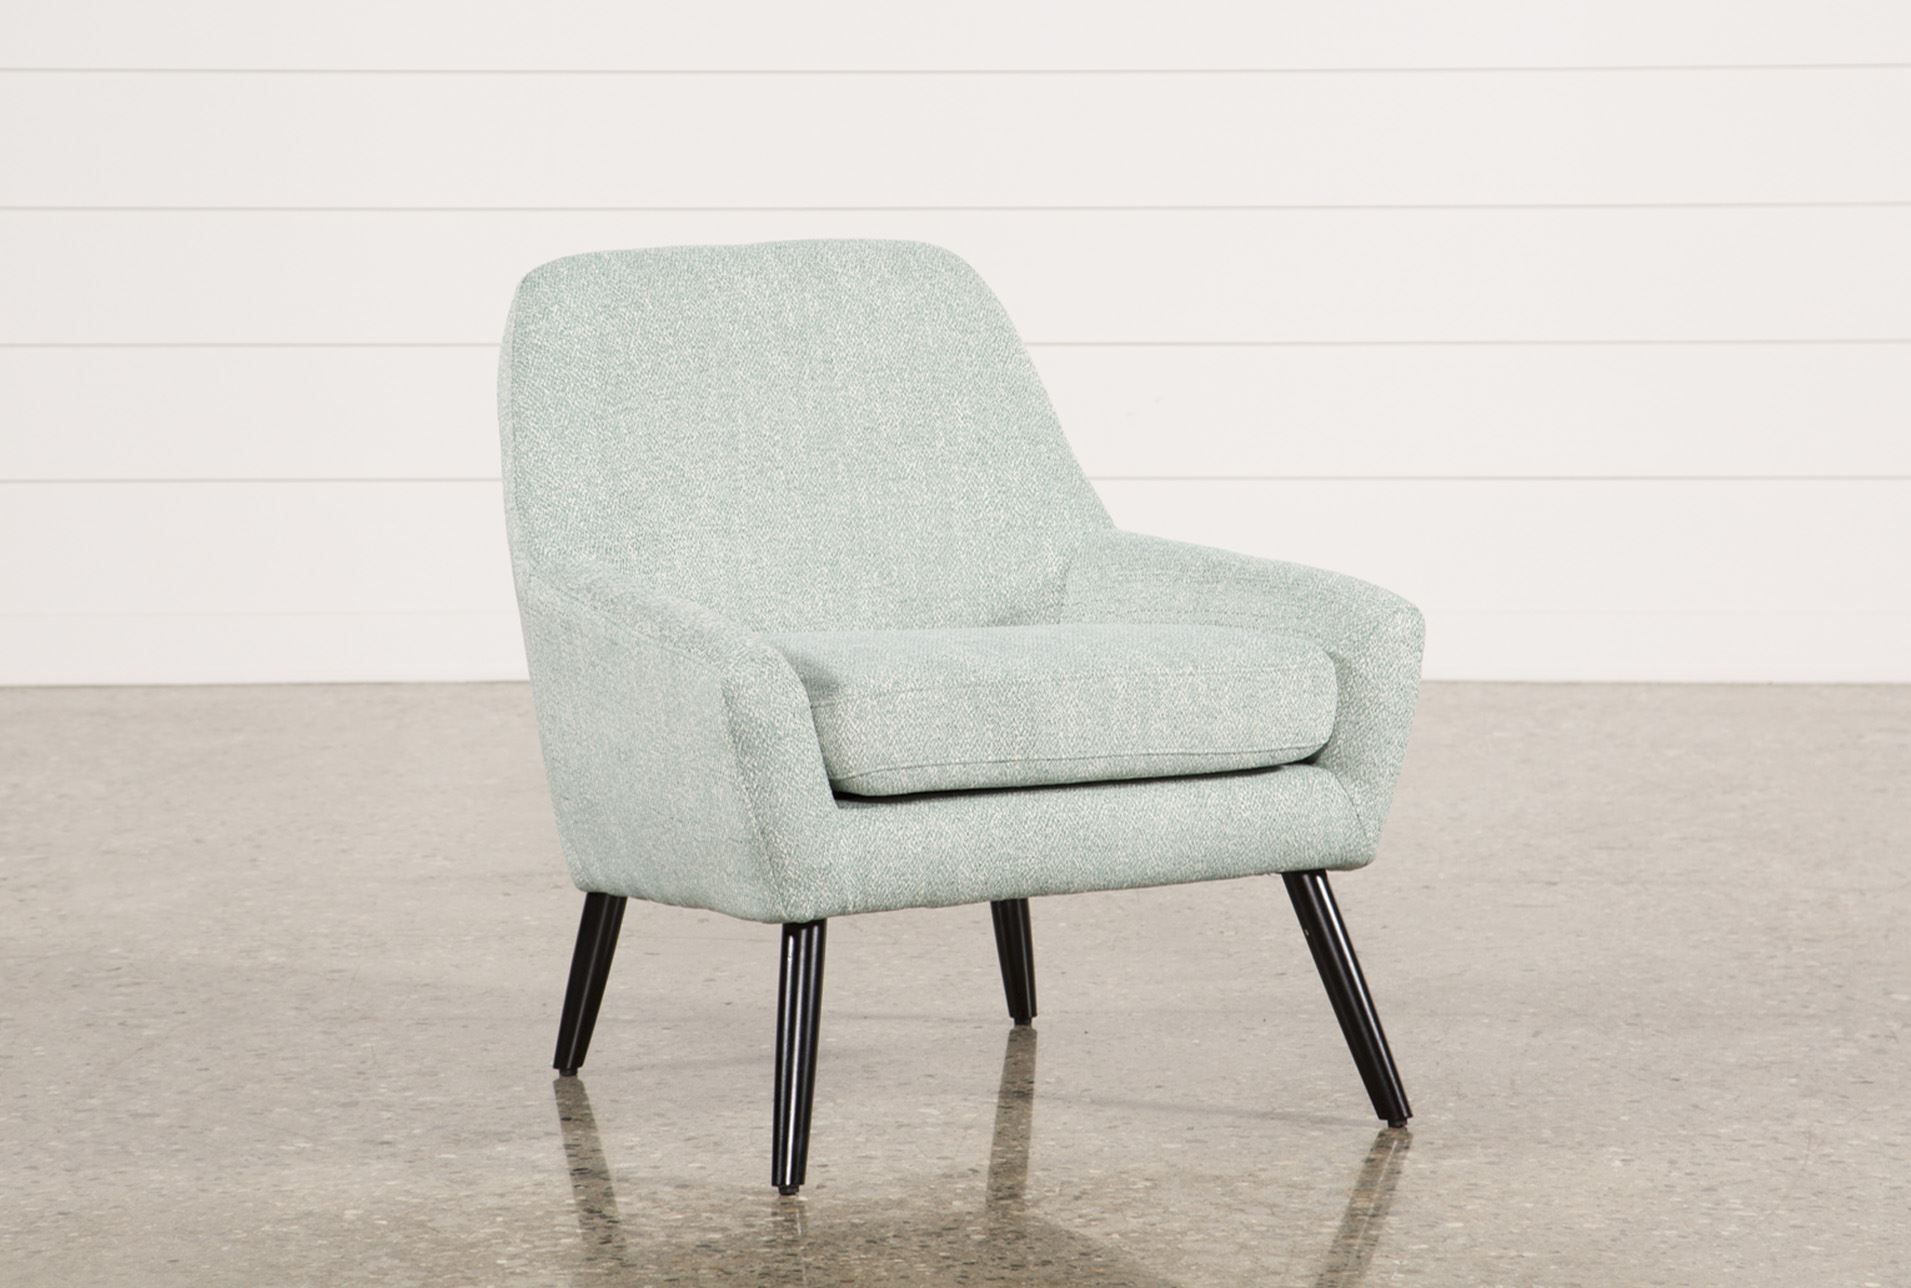 Celeste Aqua Accent Chair 360 Small Chair For Bedroom Accent